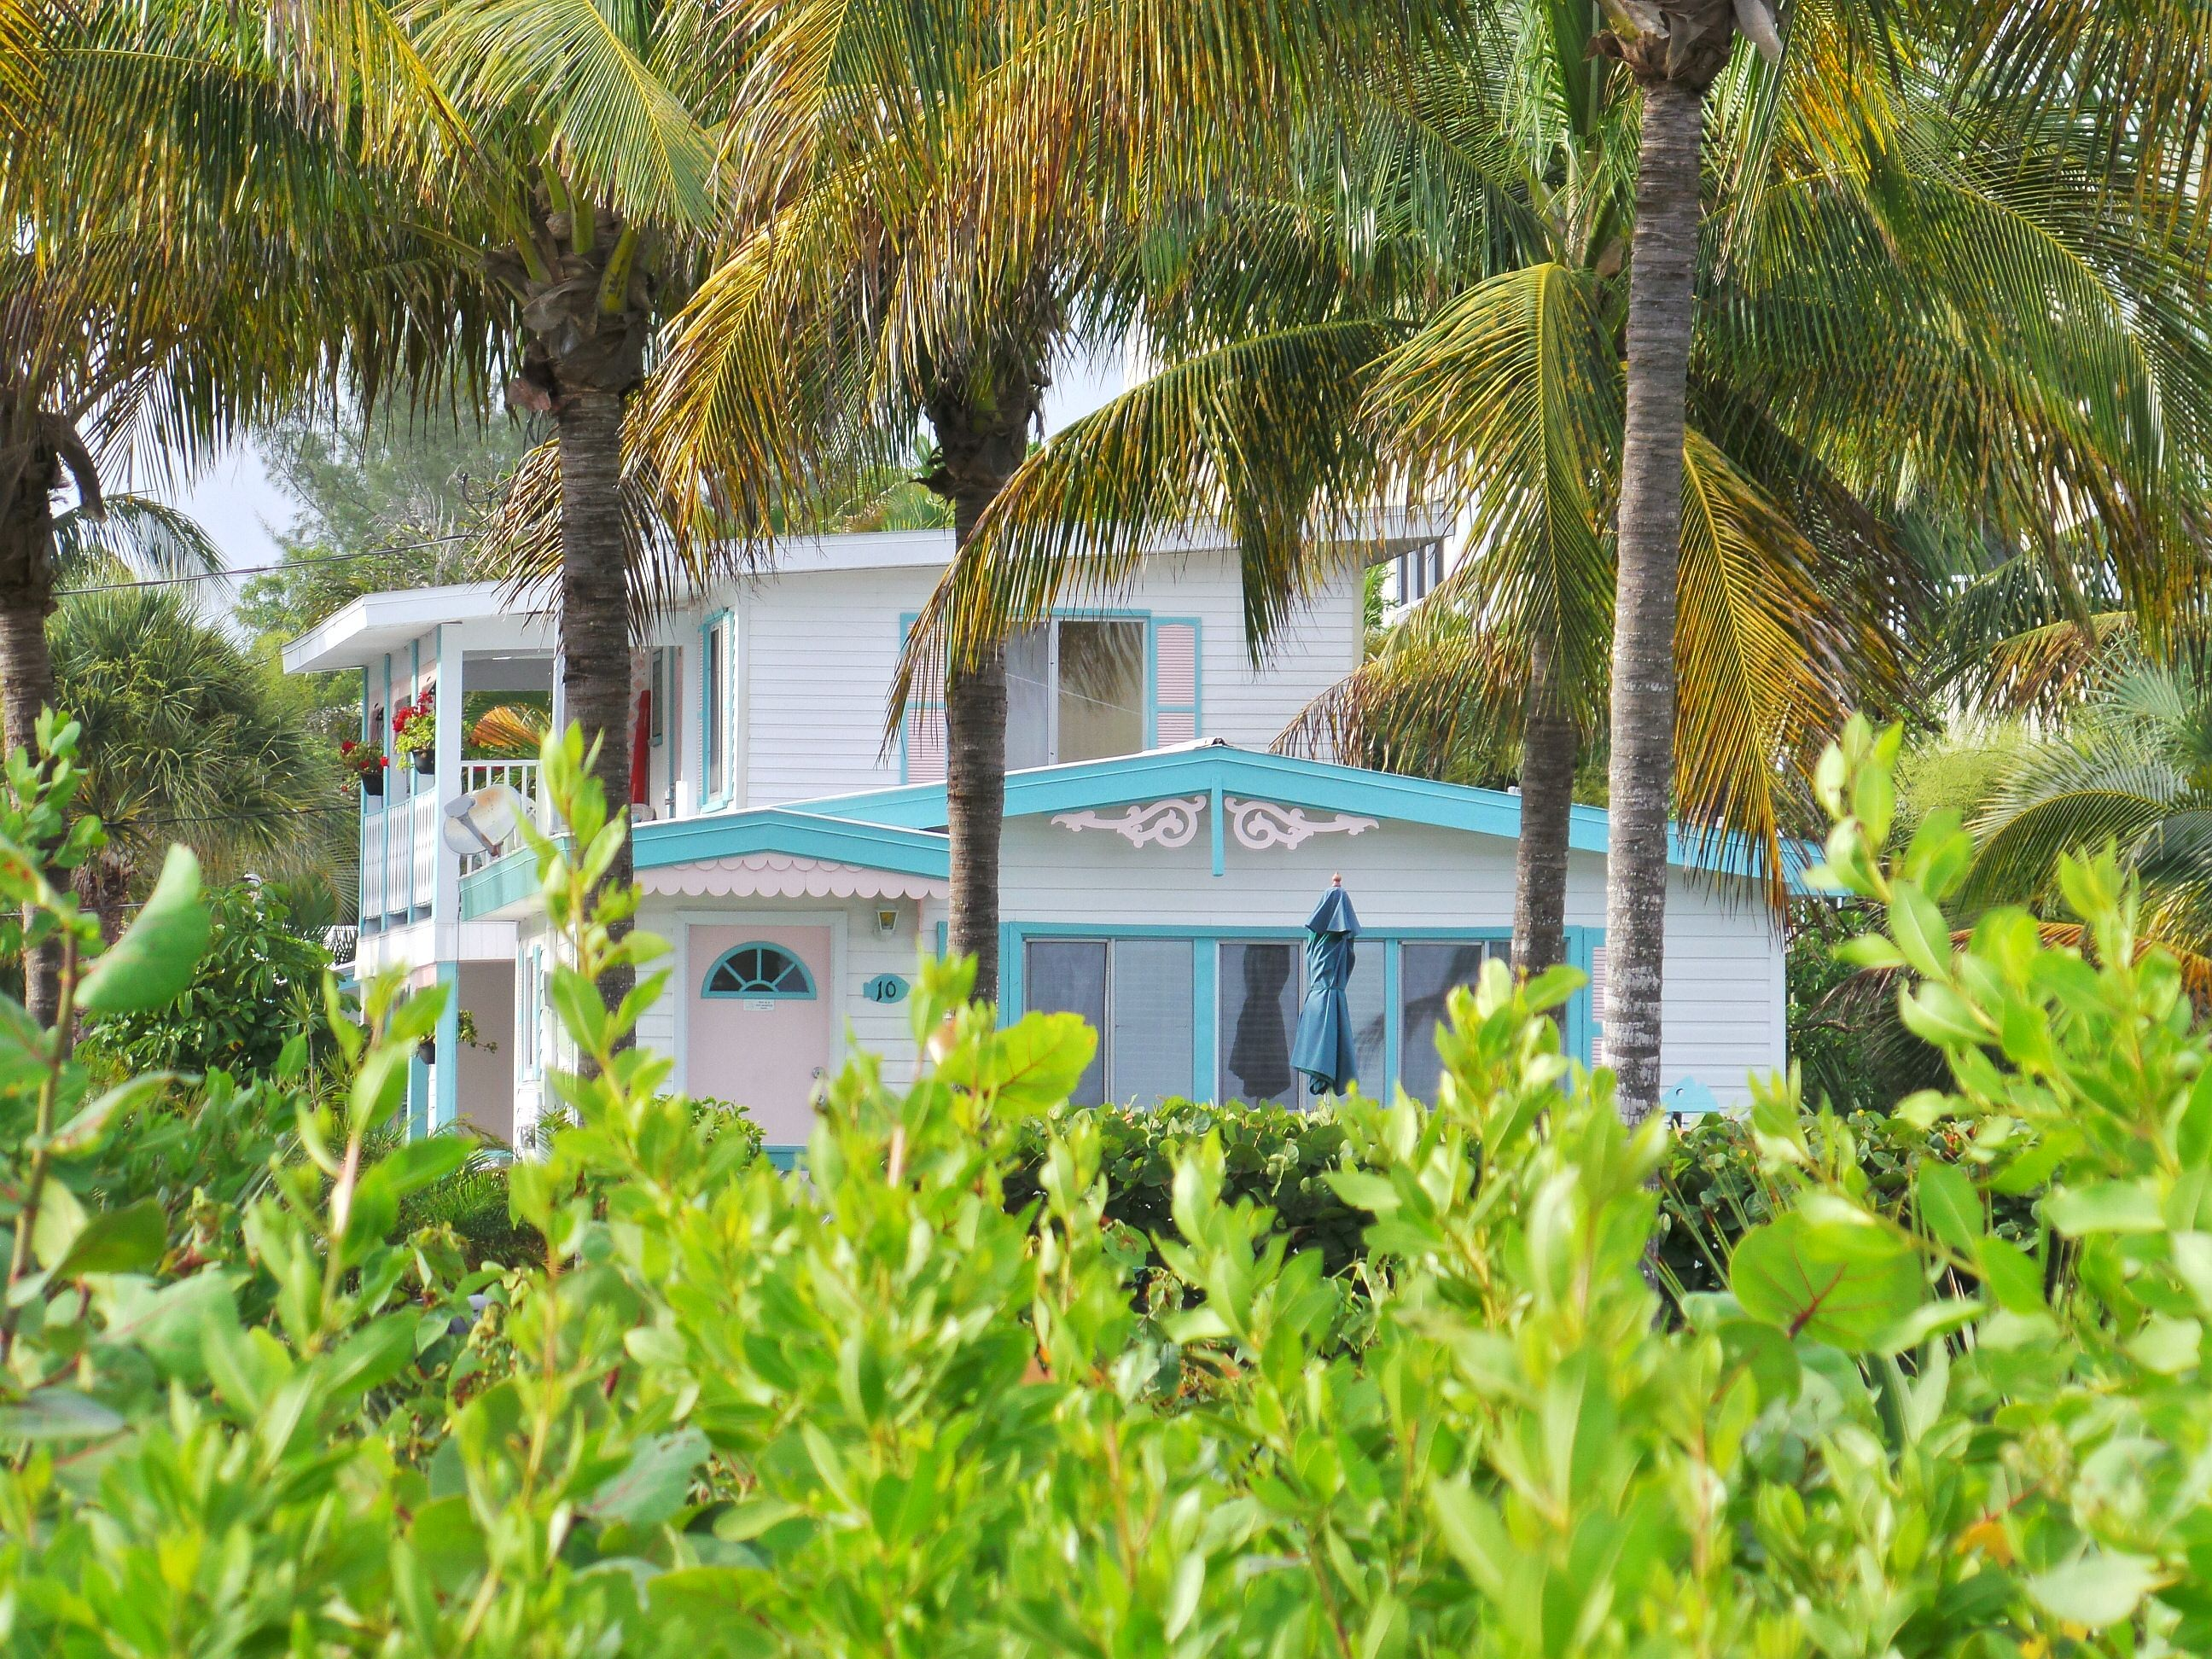 One Of Our Charming Gulf Breeze Cottages All Nestled In Between The Palms And Foliage Sanibelisland Sanibel Island Island Vacation Rentals Captiva Island